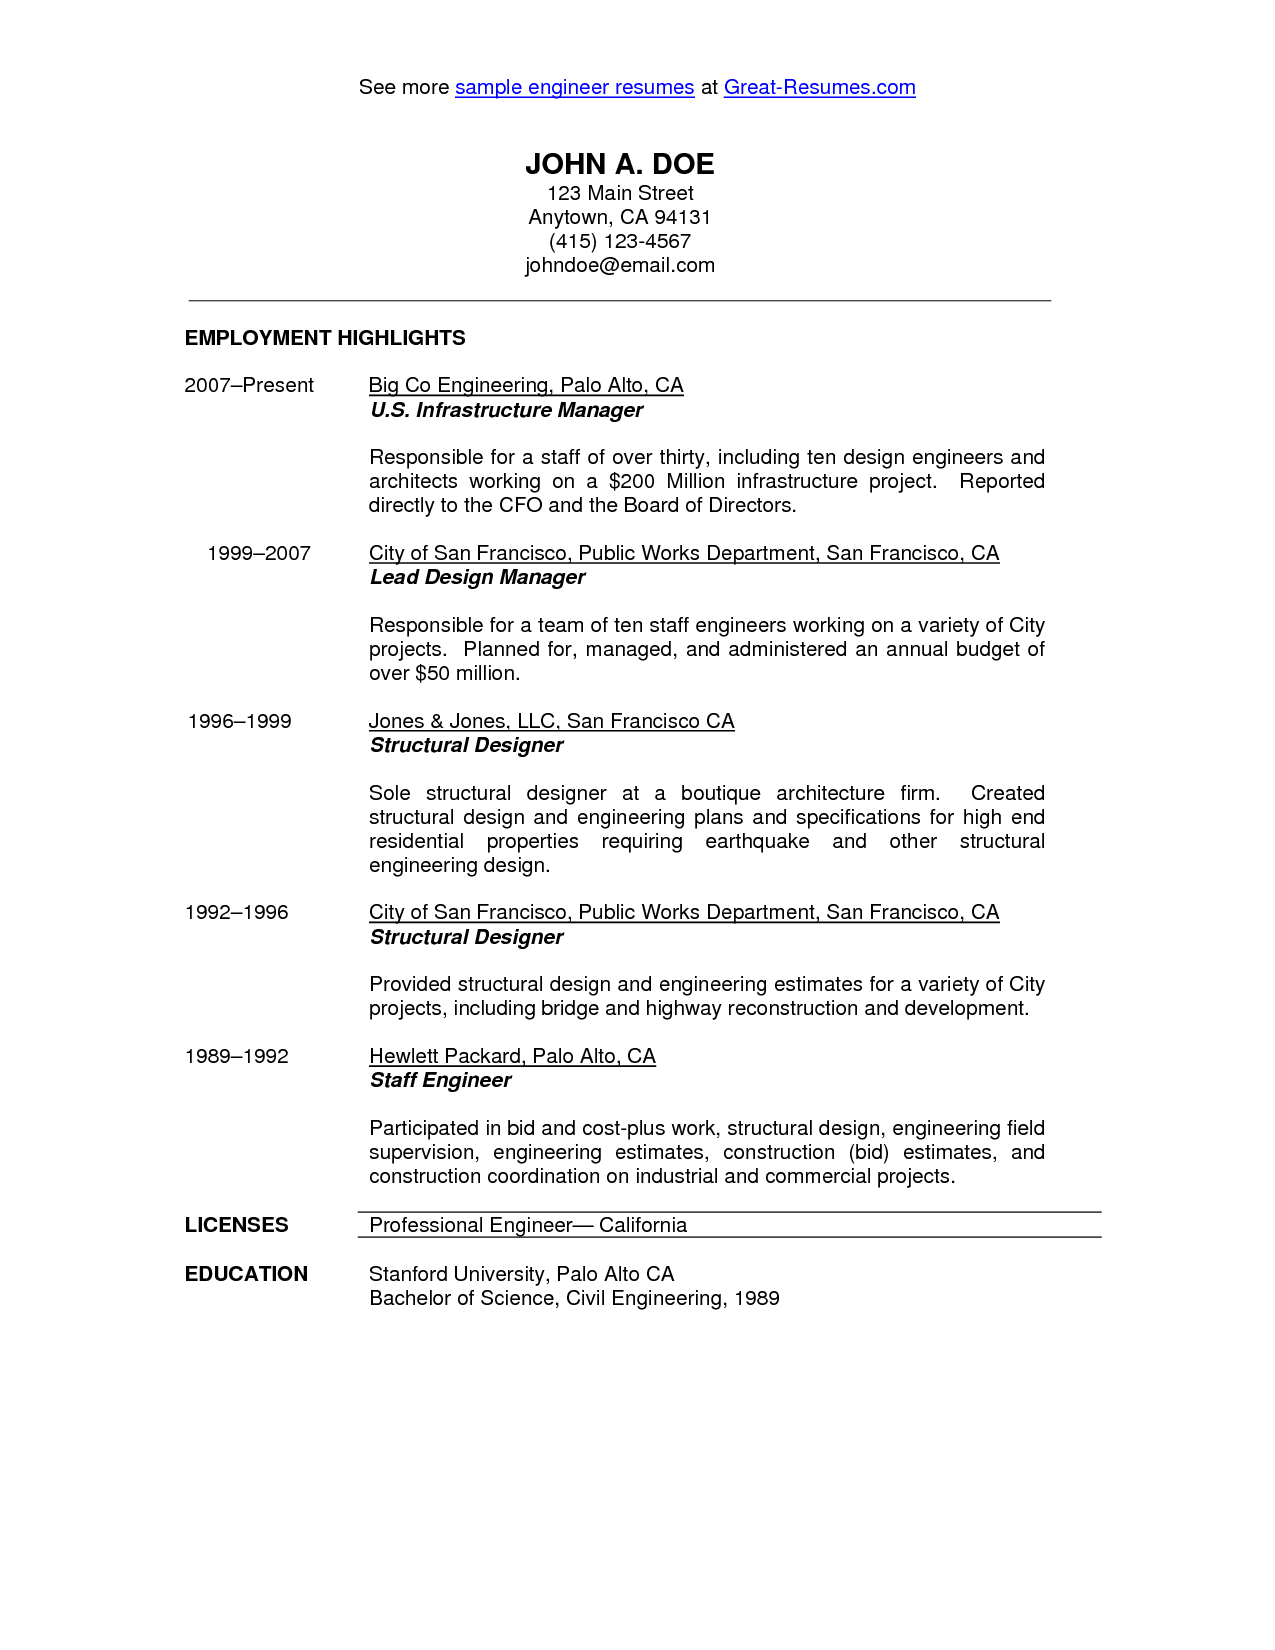 Resume Education Example Endearing Civil Engineer Resume Sample  Httpwwwresumecareercivil Inspiration